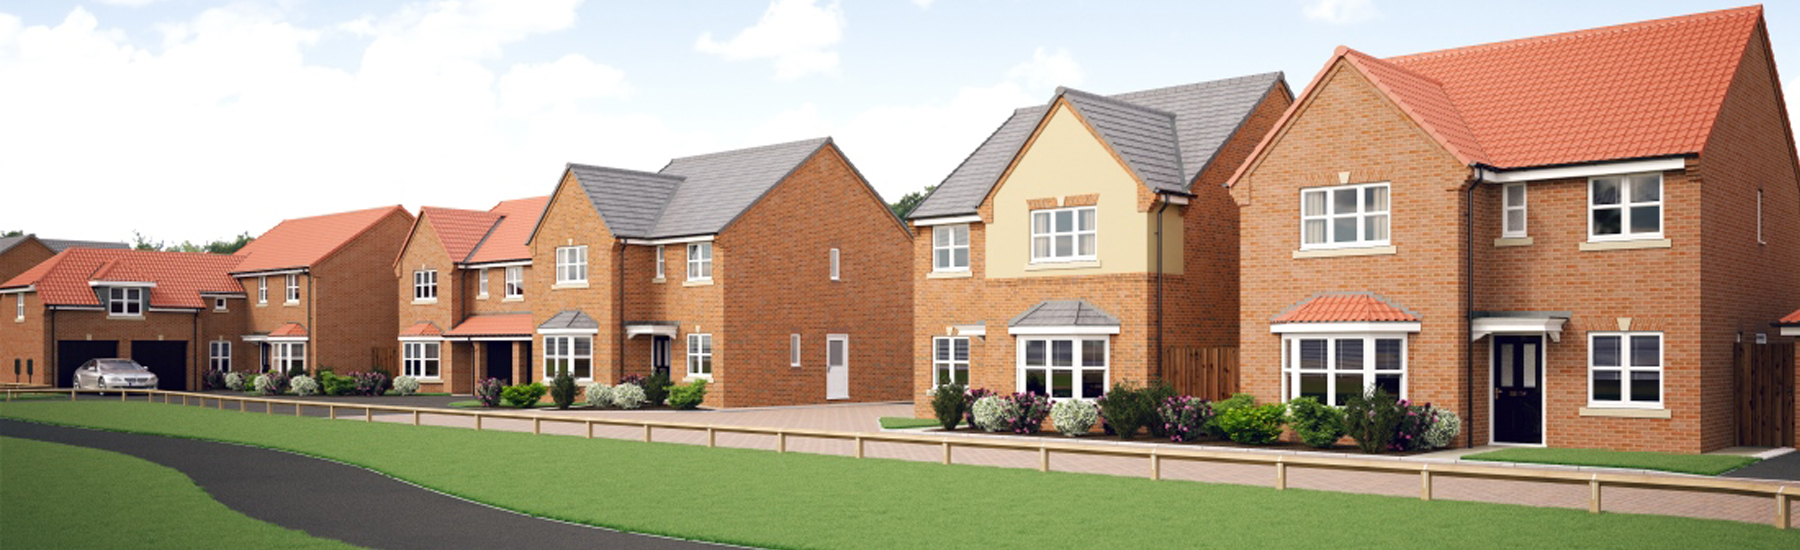 New build homes Boroughbridge | 2 - 5 Bedroom Homes for sale